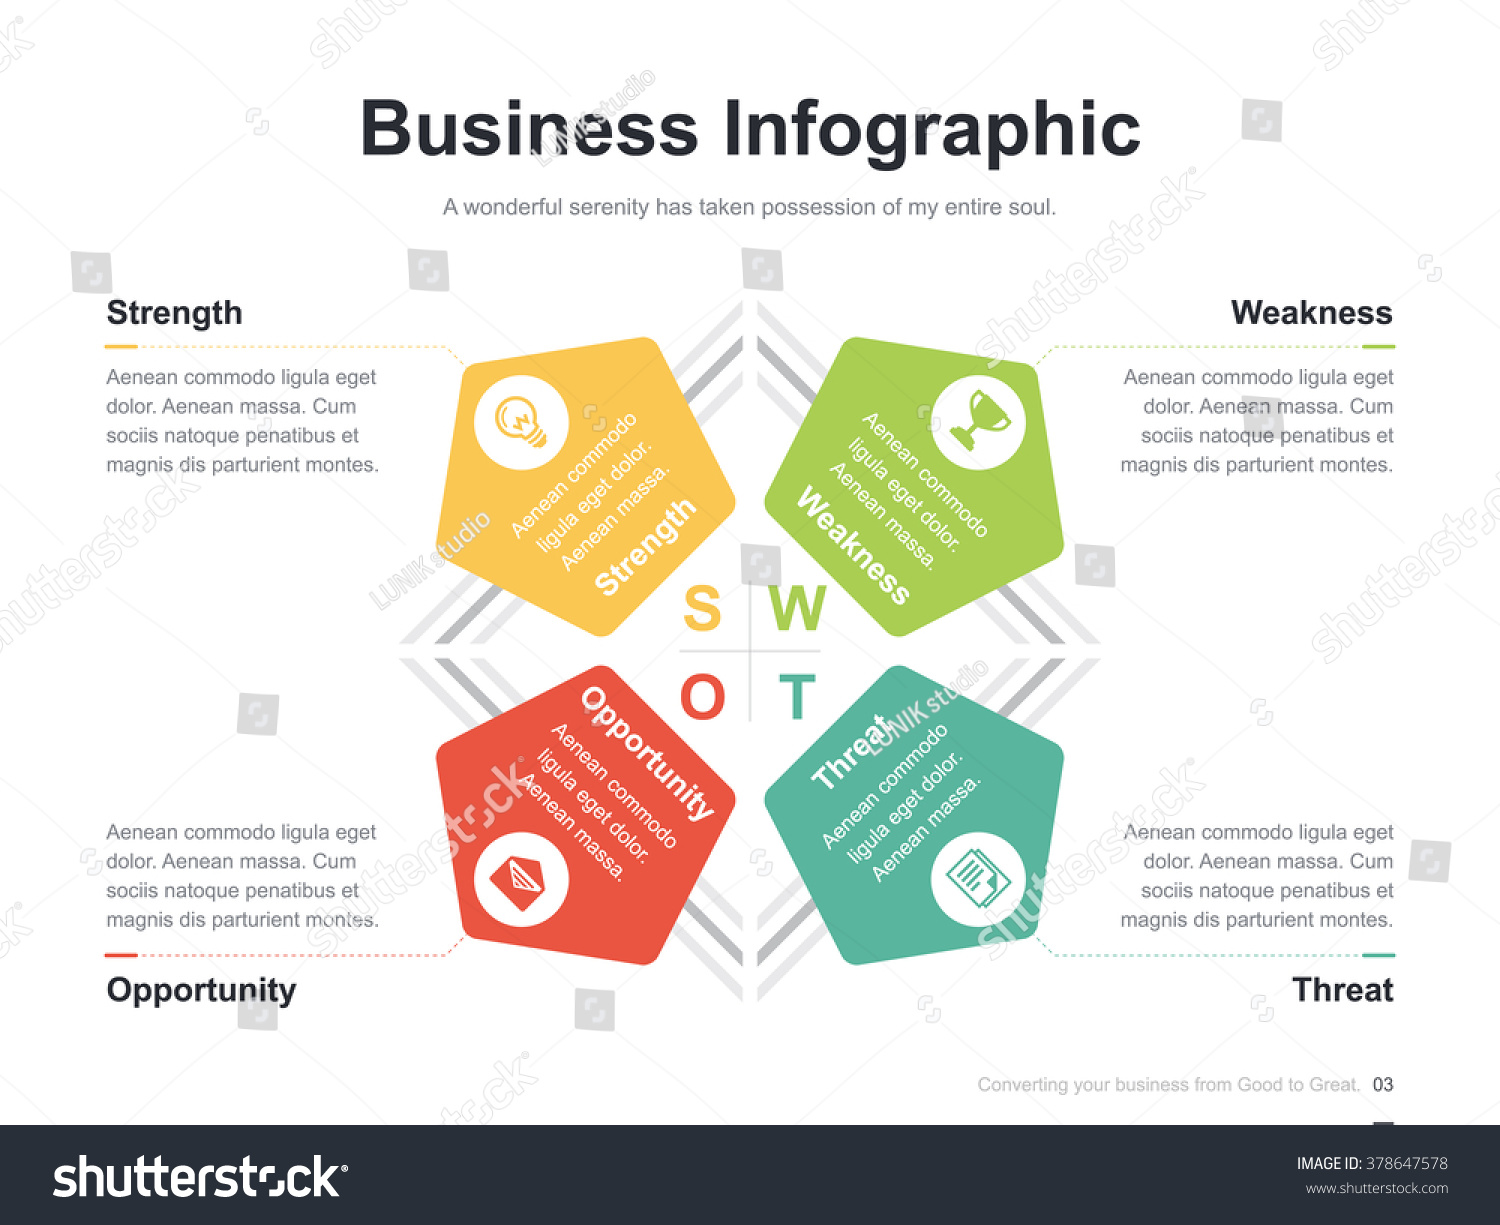 versace swot analysis ppt presentation 30+ creative charts swot report powerpoint network presentation statistics swot swot analysis tech templates and keynote templates download.